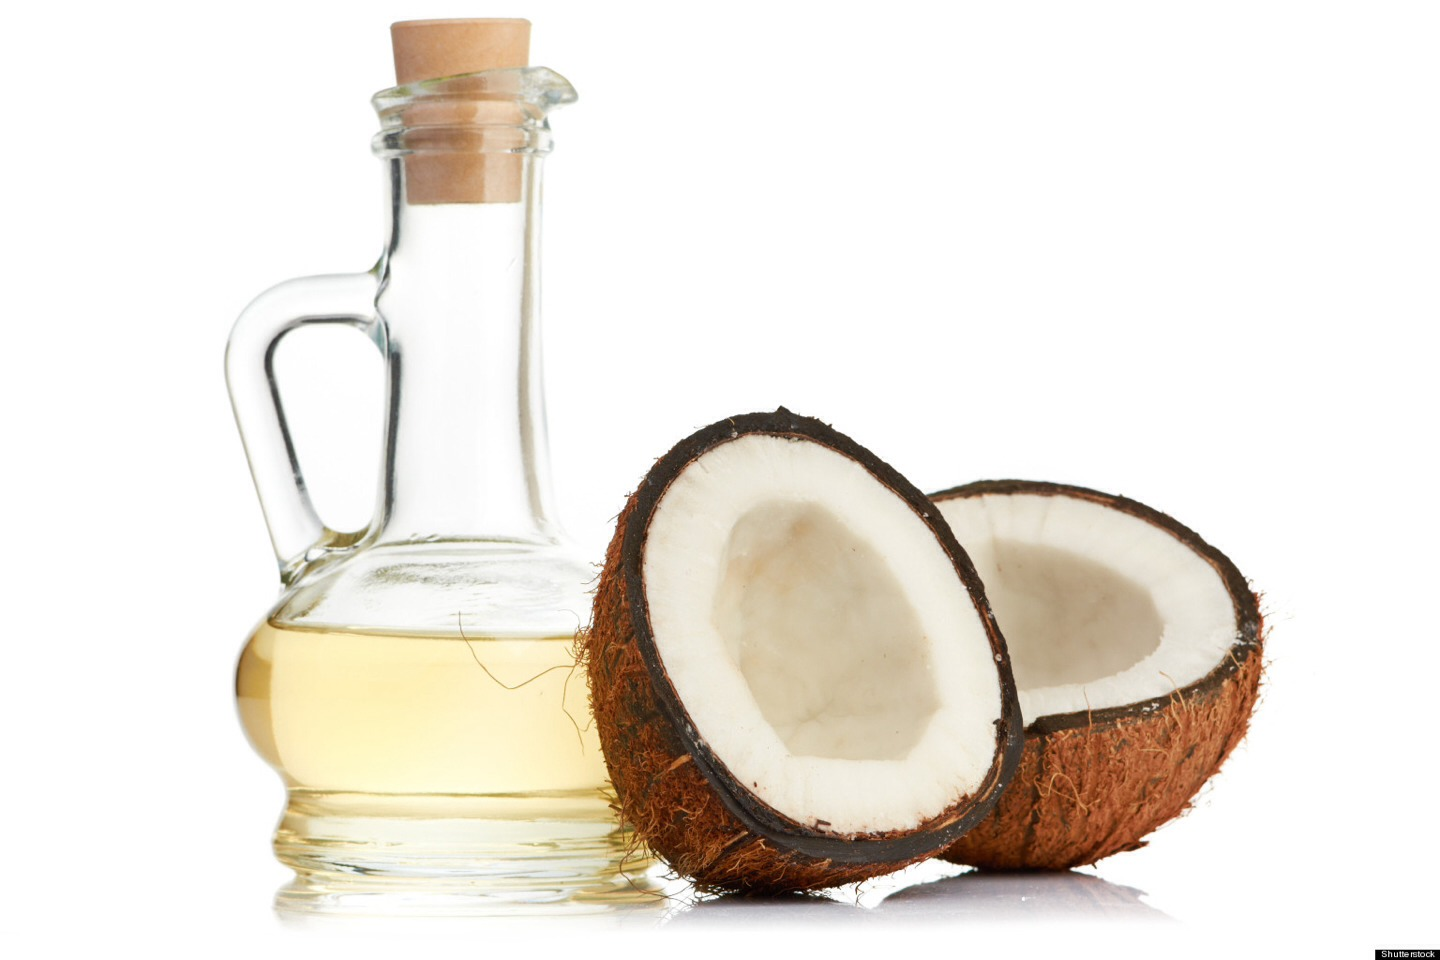 Swish one teaspoon of organic coconut oil in mouth for 20 min every morning. The coconut oil will pull toxins out of your body creating whiter teeth, stronger gums, and even help with acne.